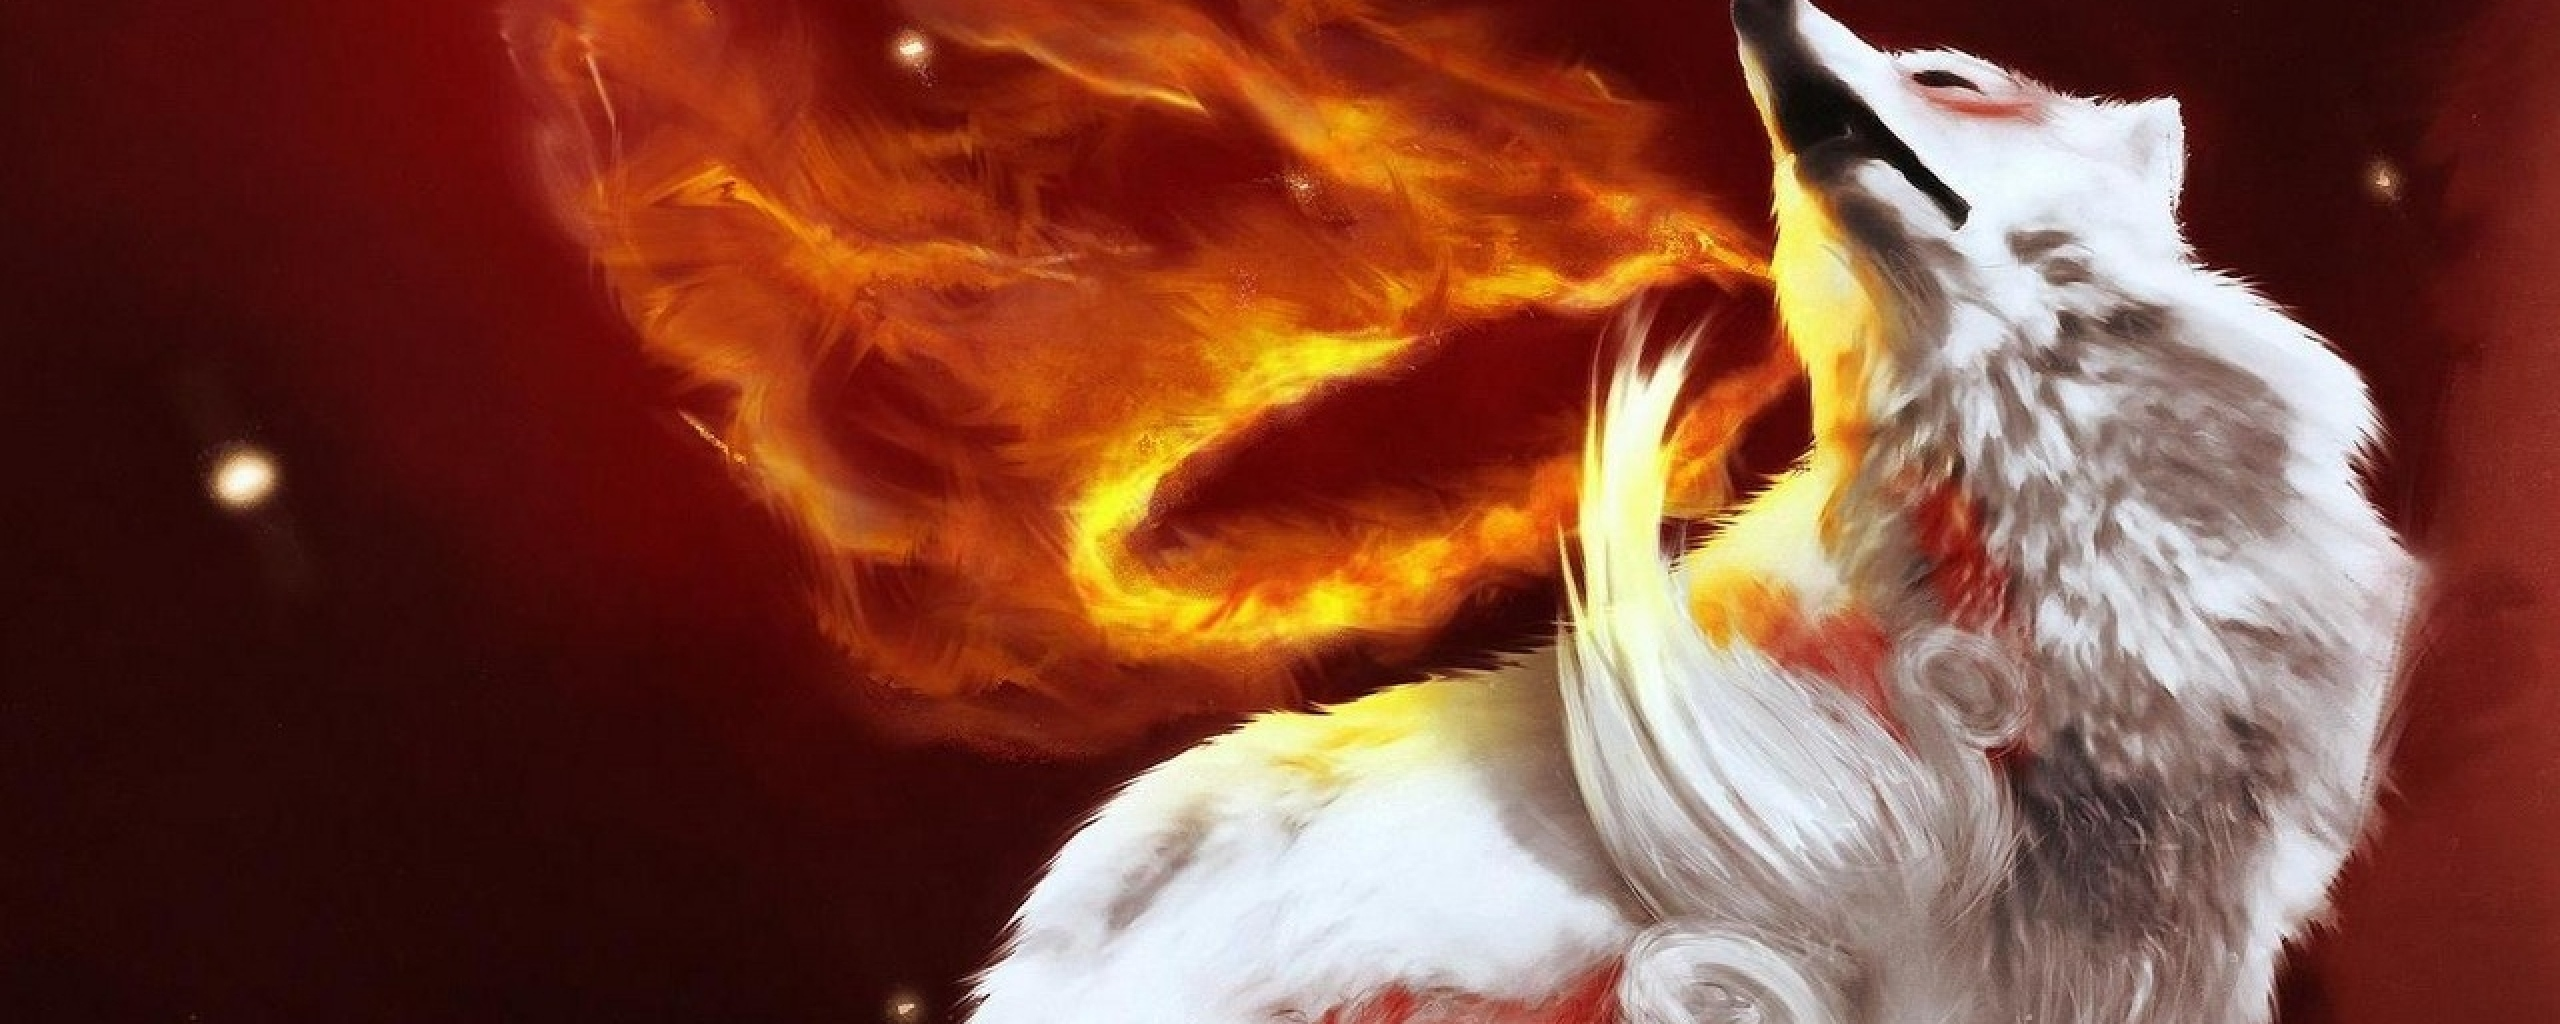 download fire wolf wallpaper gallery